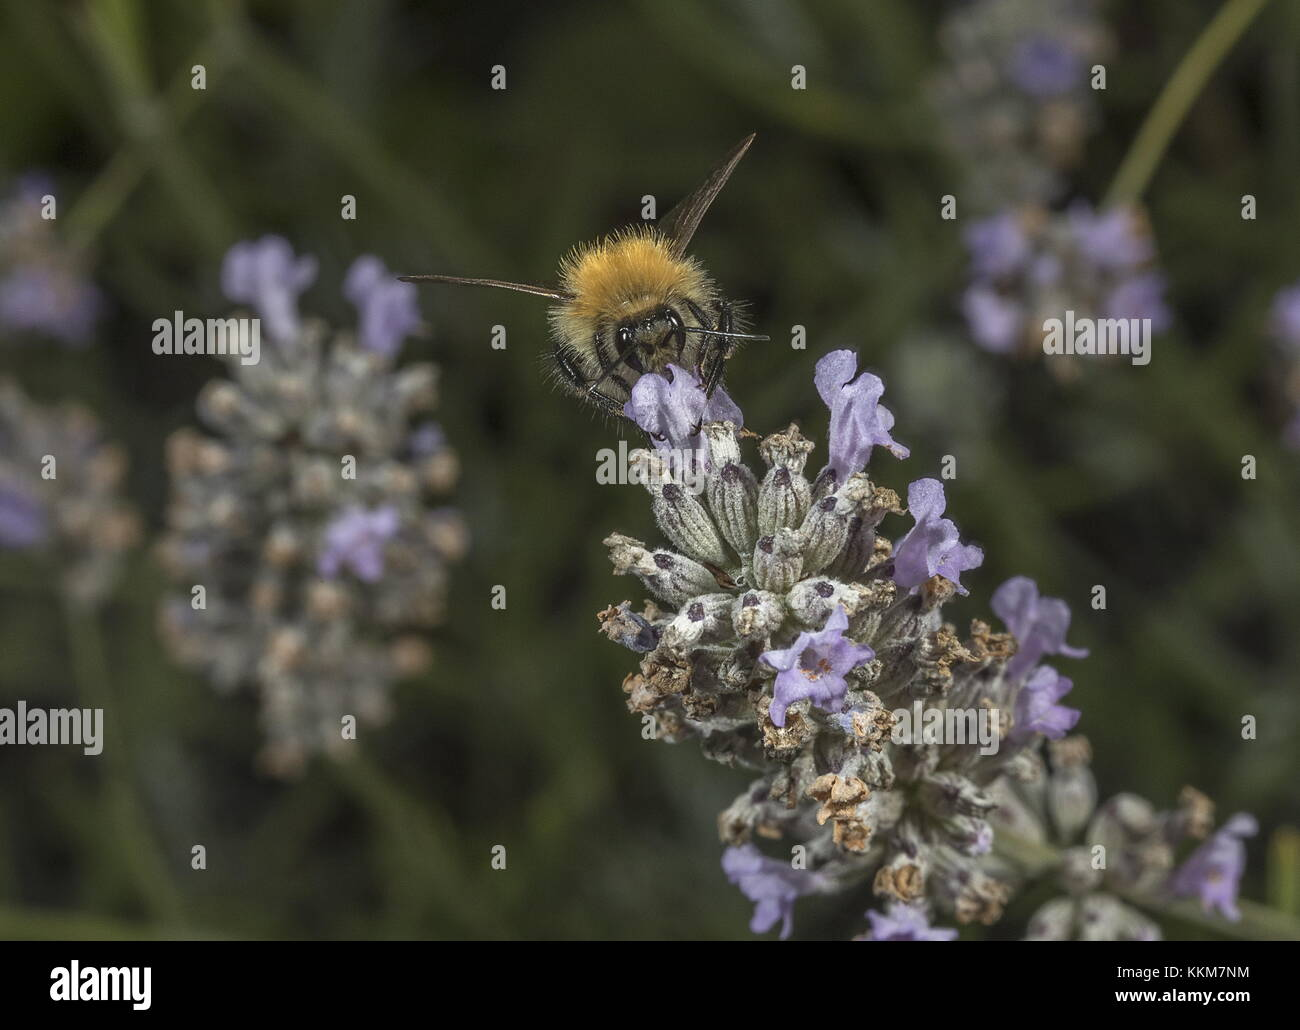 Worker Common Carder Bumblebee, Bombus pascuorum visiting Lavender flowers. - Stock Image